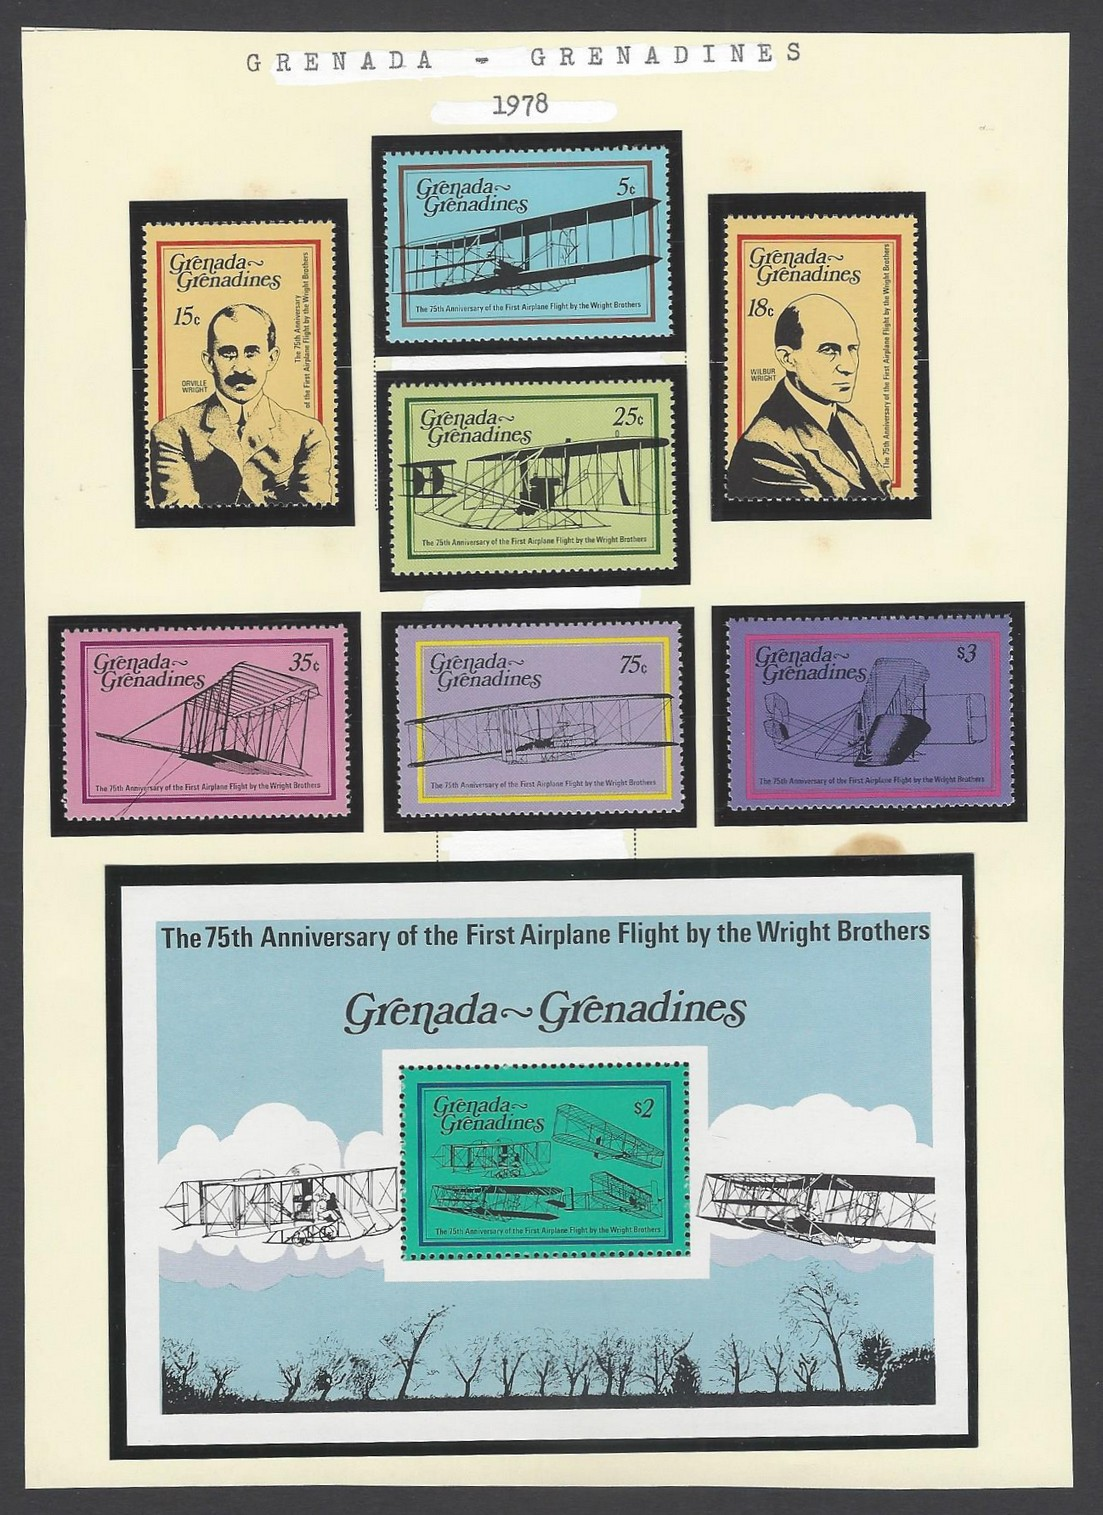 Grenada Grenadines 1978 75thAnn of 1stAirplane Flight by Wright Brothers set of 7 & MS MNH